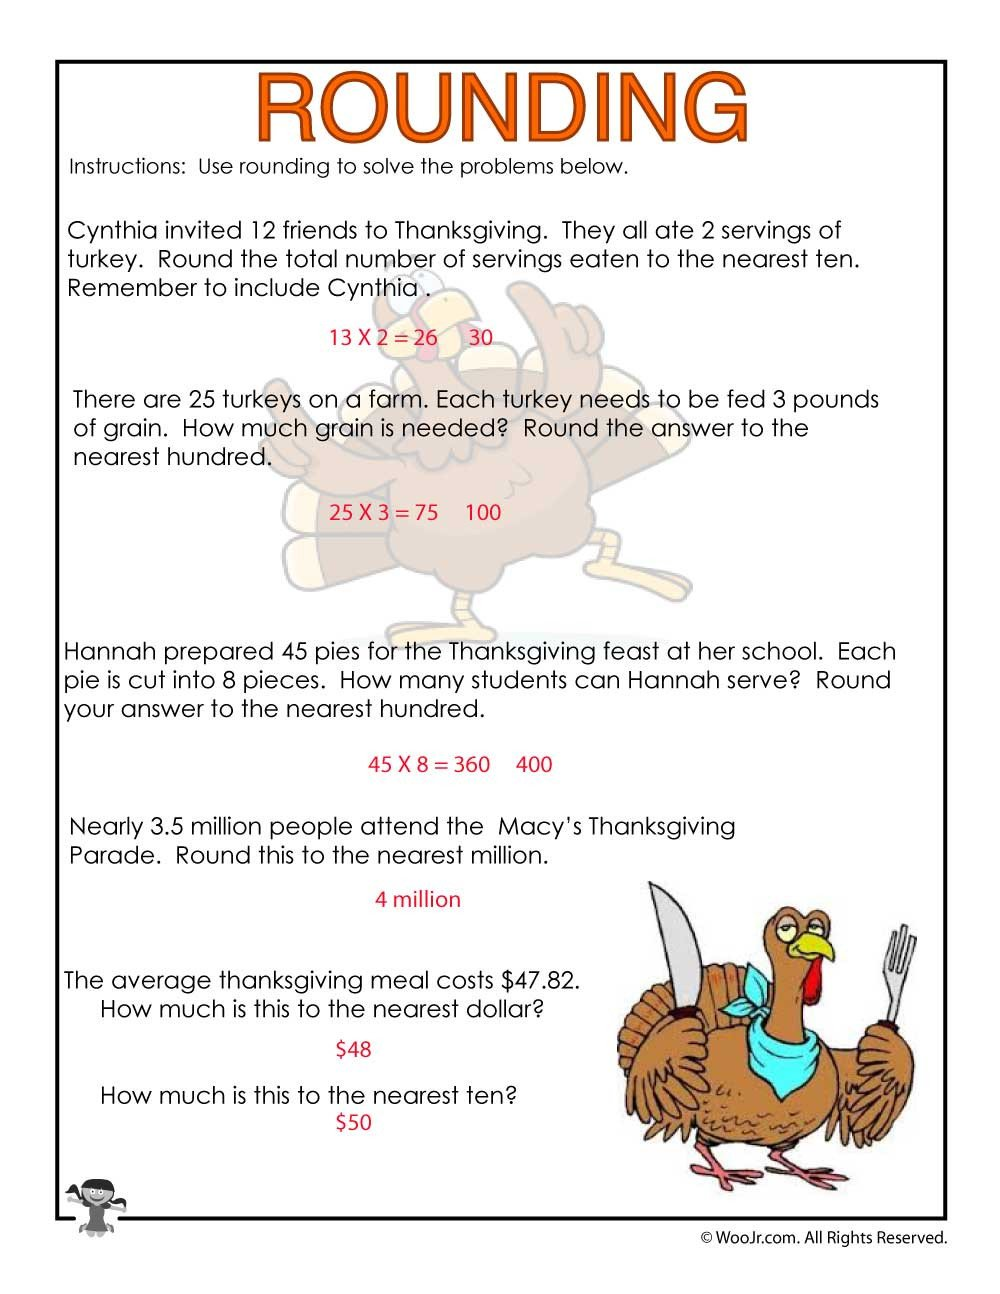 Tens and Hundreds Rounding Word Problems Worksheet ANSWERS